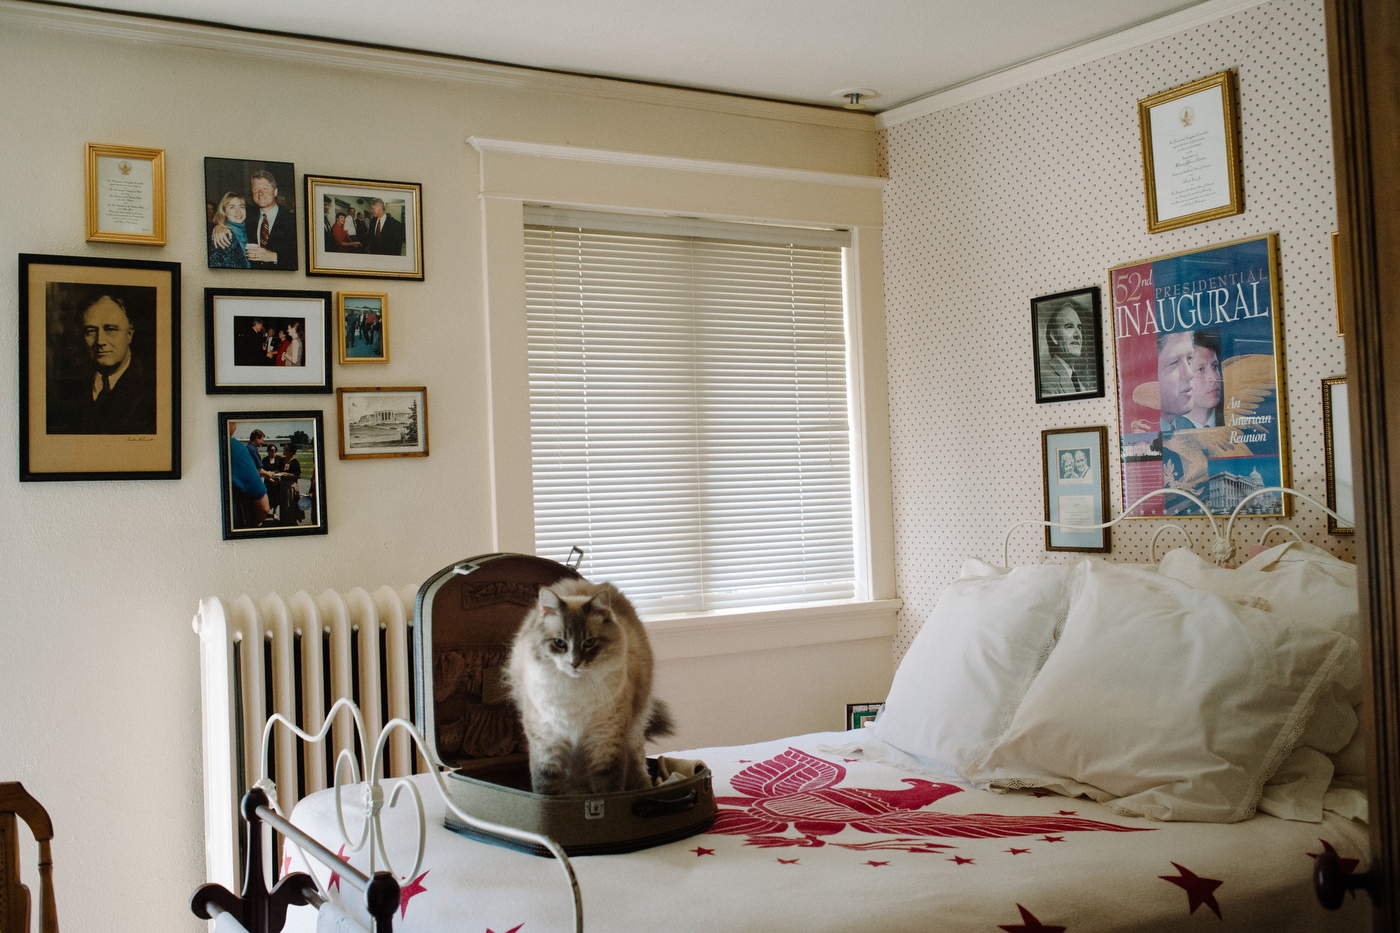 Ghost, the Ankenbrand family's cat stretches after napping in their Democrat-themed guest room of their house in a more historic neighborhood in Ferguson.